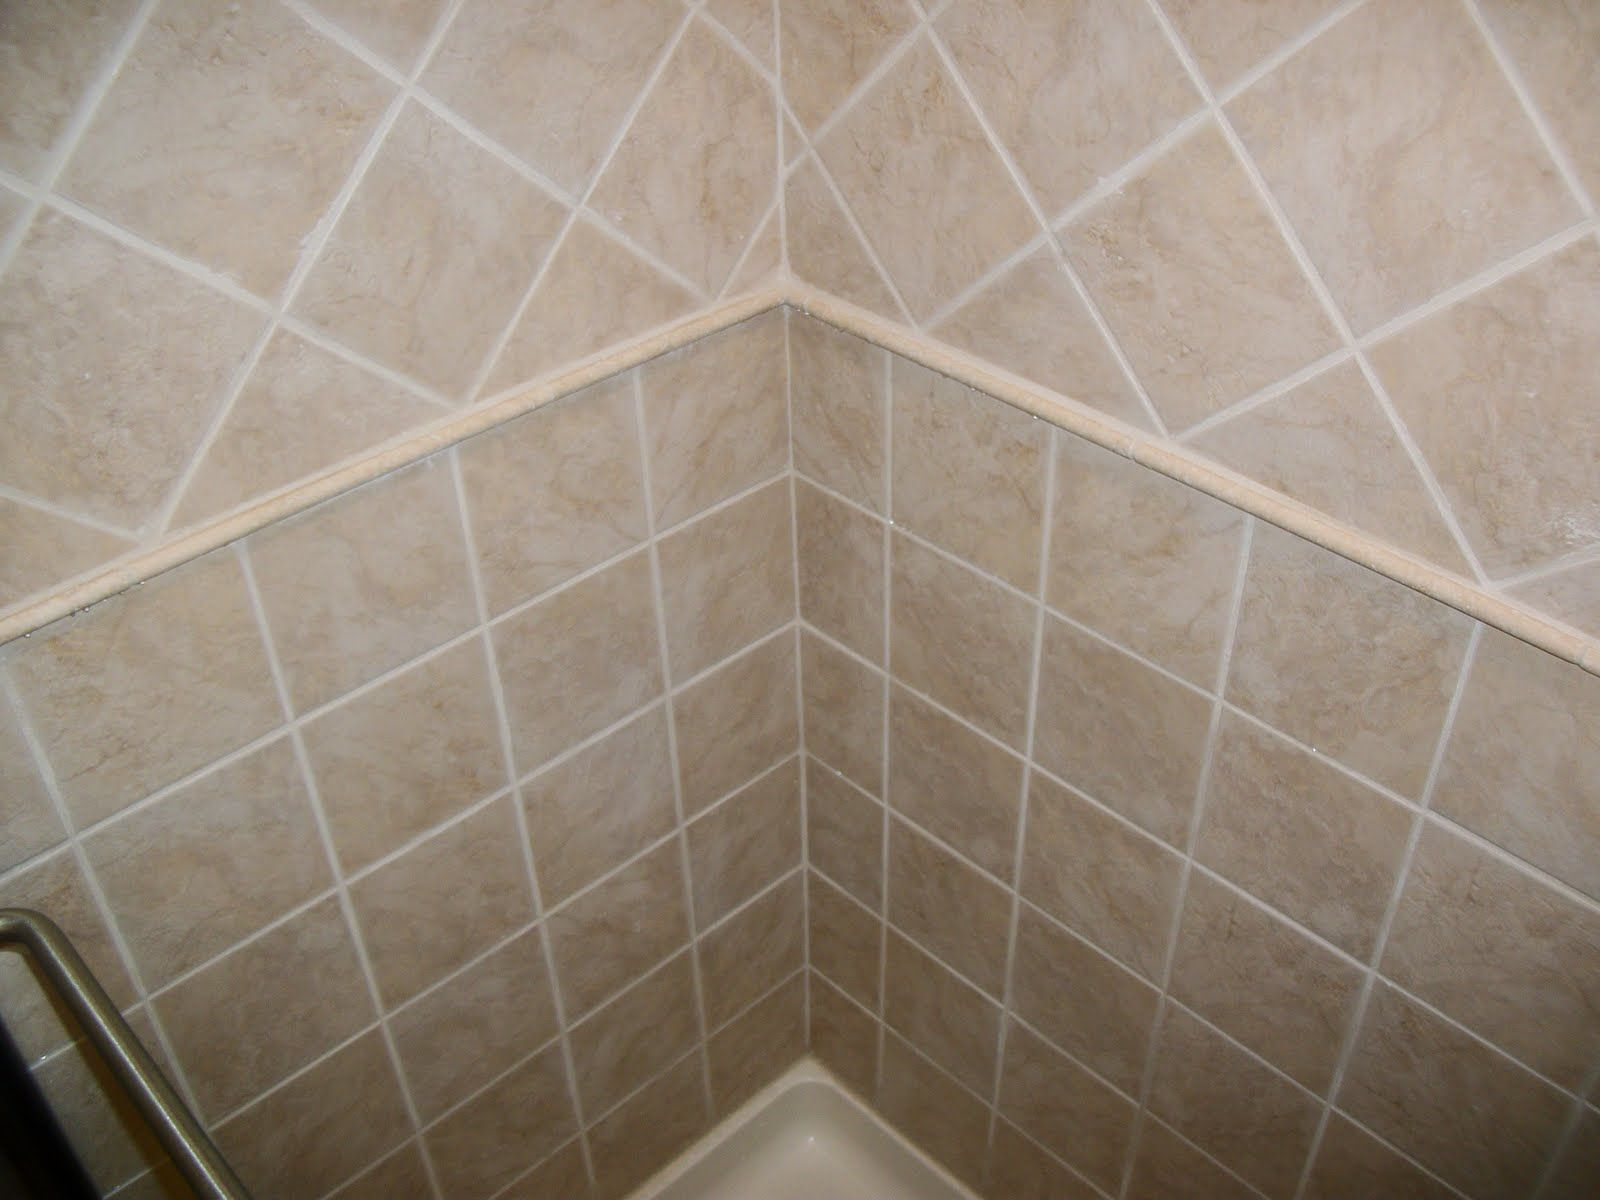 Tile For Bathroom Shower Walls Bathroom Shower Wall Tile Designs Bathroom Shower Tile Designs